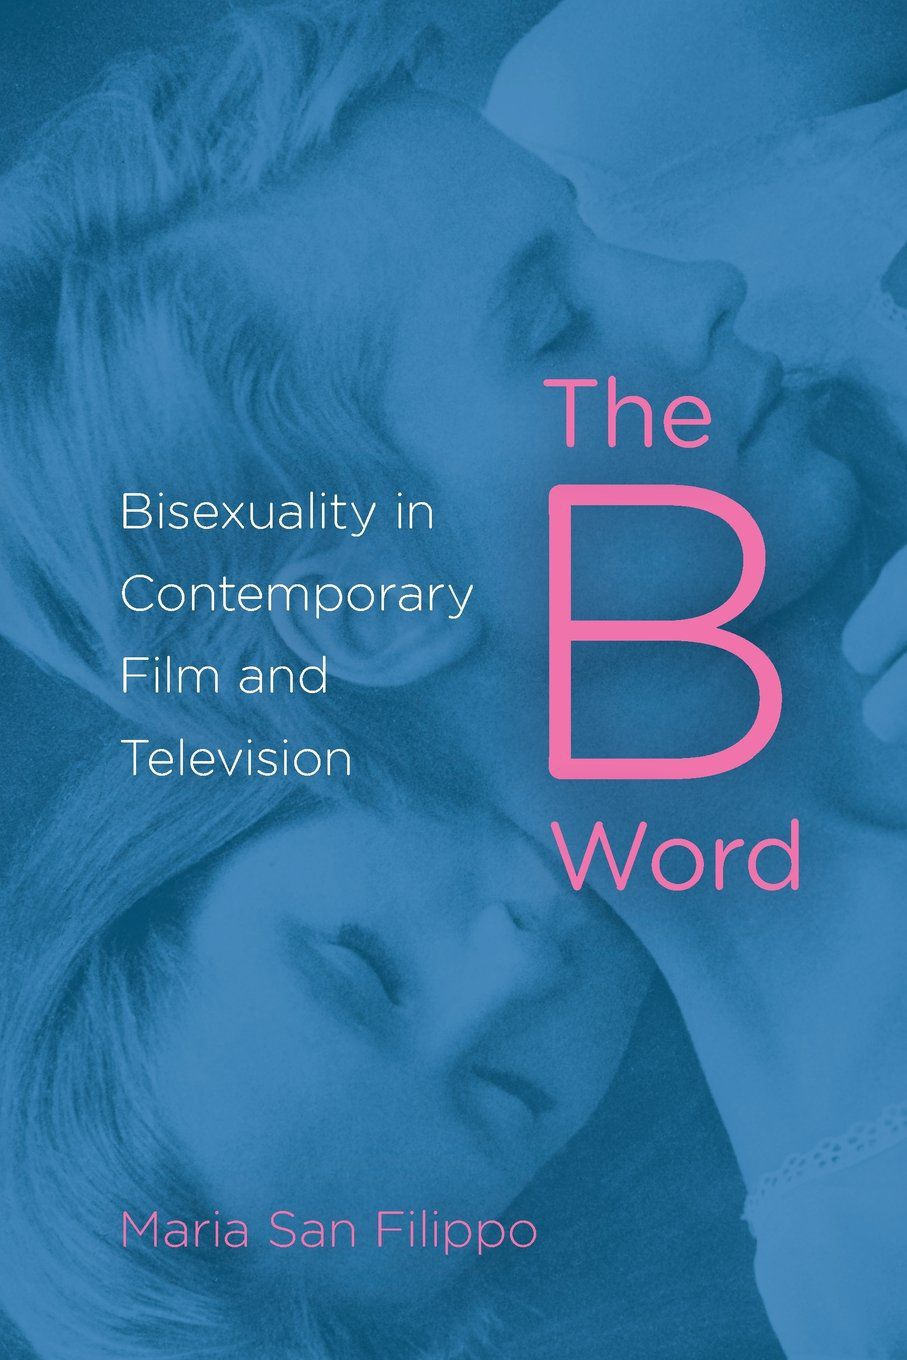 """You Mean, Like, Chasing Amy?"": Maria San Filippo's The B Word: Bisexuality in Contemporary Film and Television"